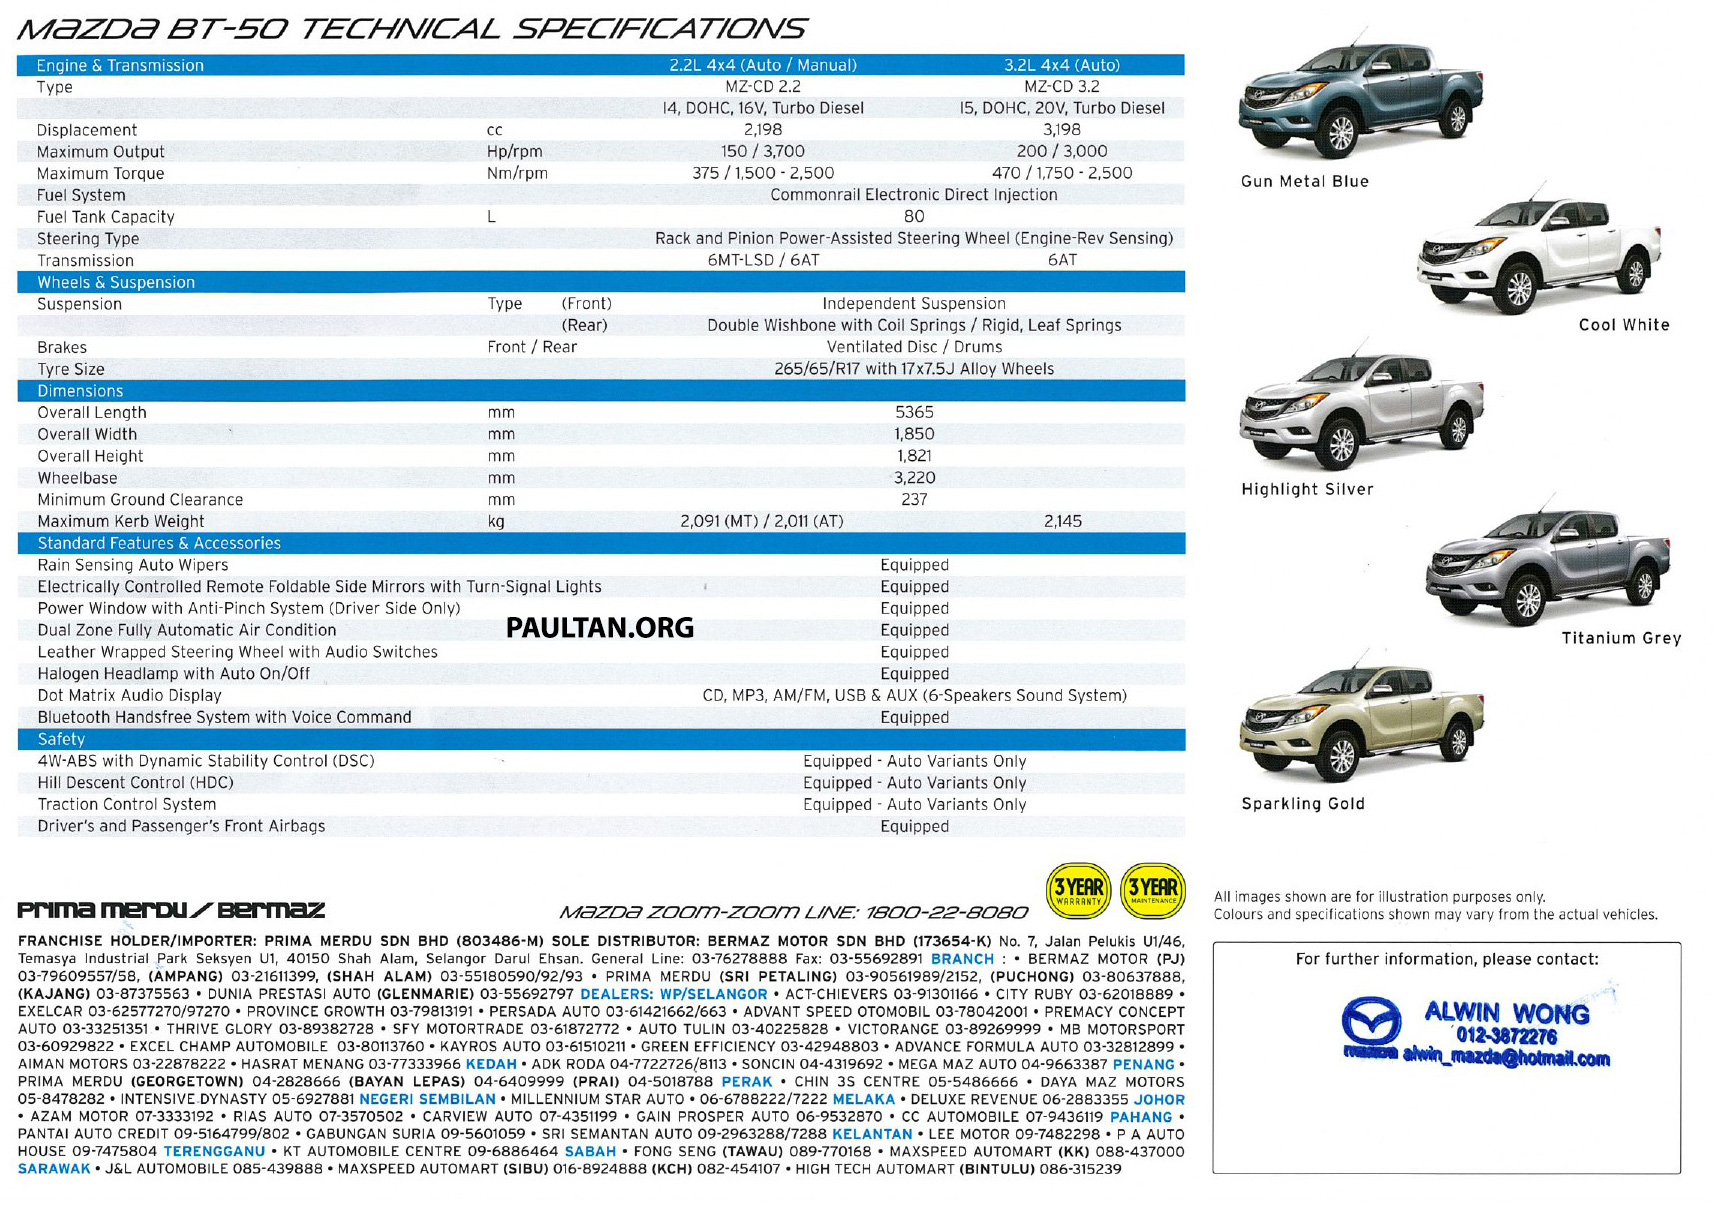 2012 Mazda Bt 50 Full Brochure And Price List Image 124187